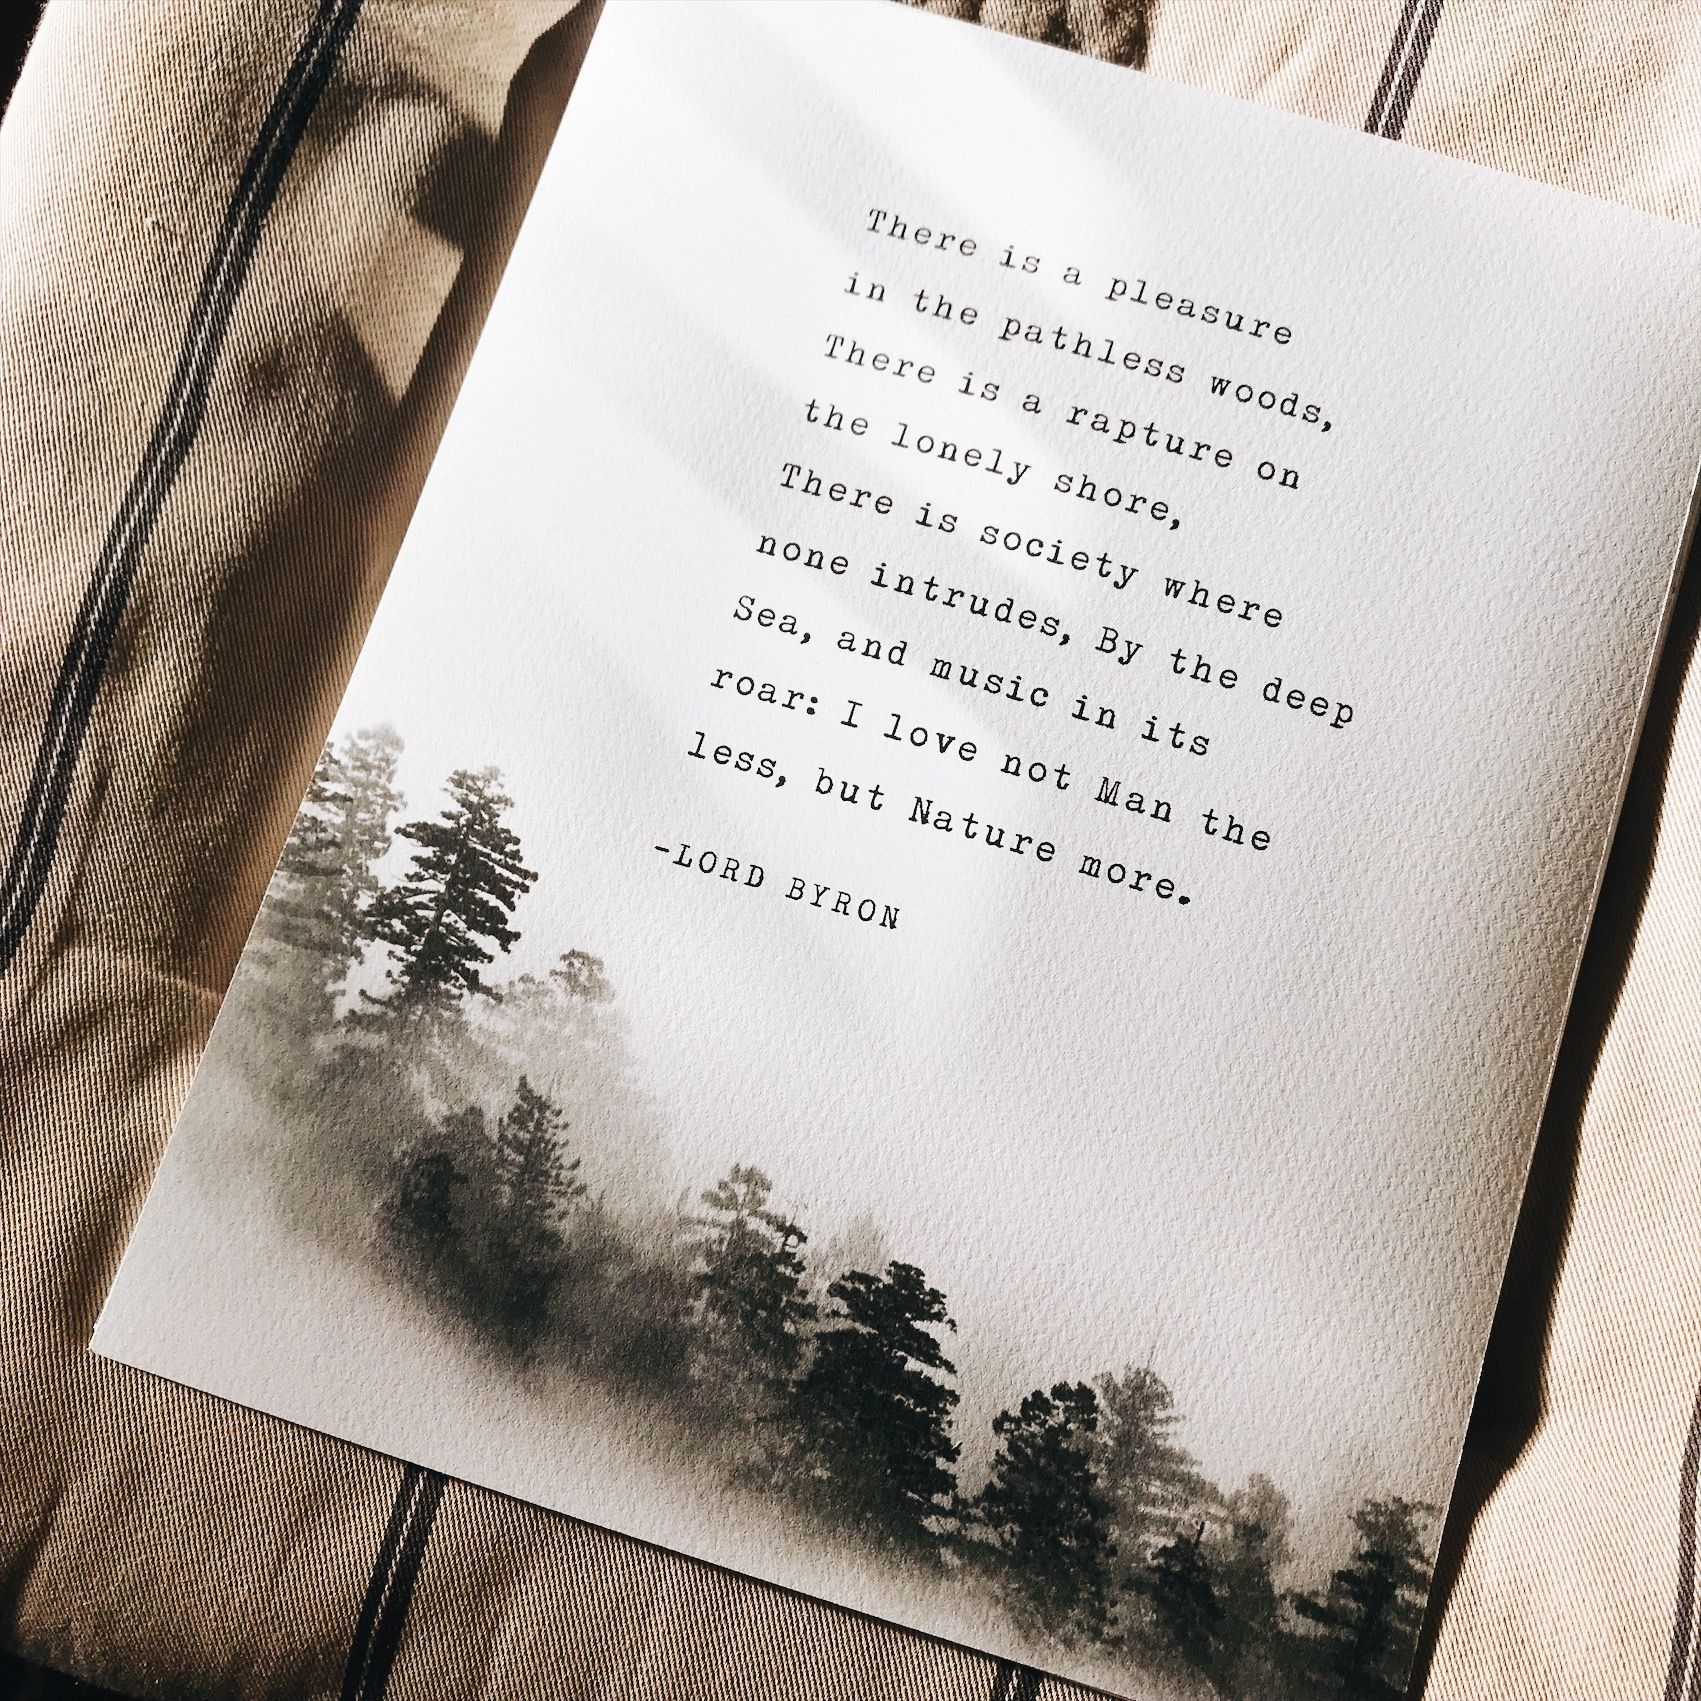 Inspirational Quote RM DRAKE POEM She Slept With Wolves Poetry Quote Print FREE POSTER WITH EVERY ORDER! Typography Poster Minimalist Wall Art